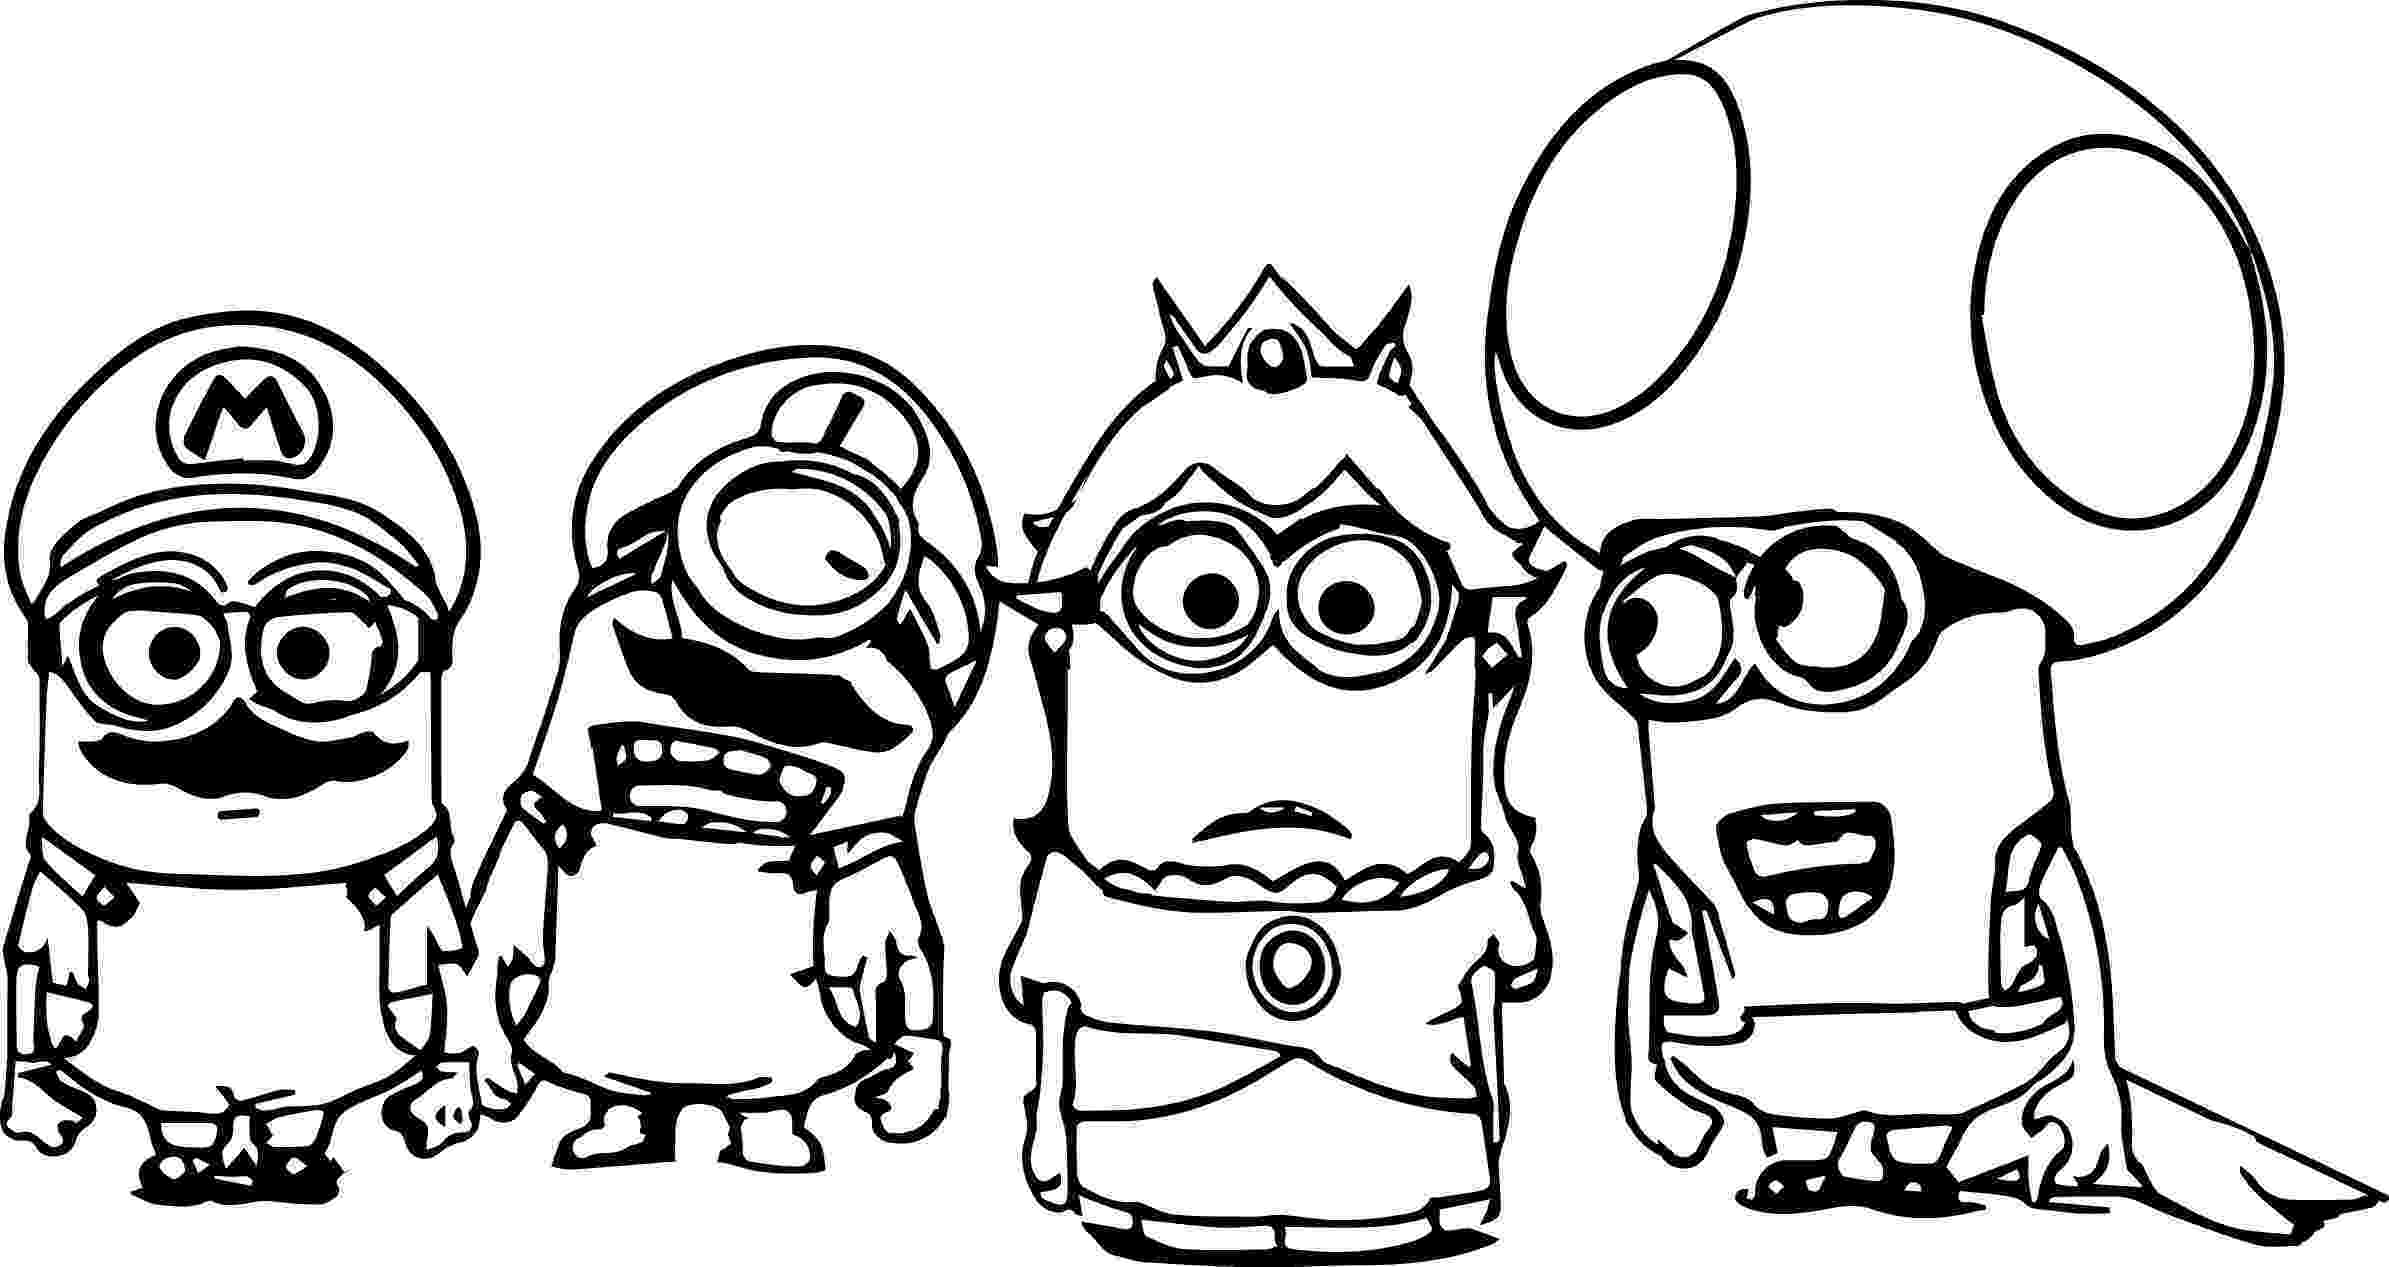 minions pictures to colour minions drive bike movie funny coloring page pictures colour minions to